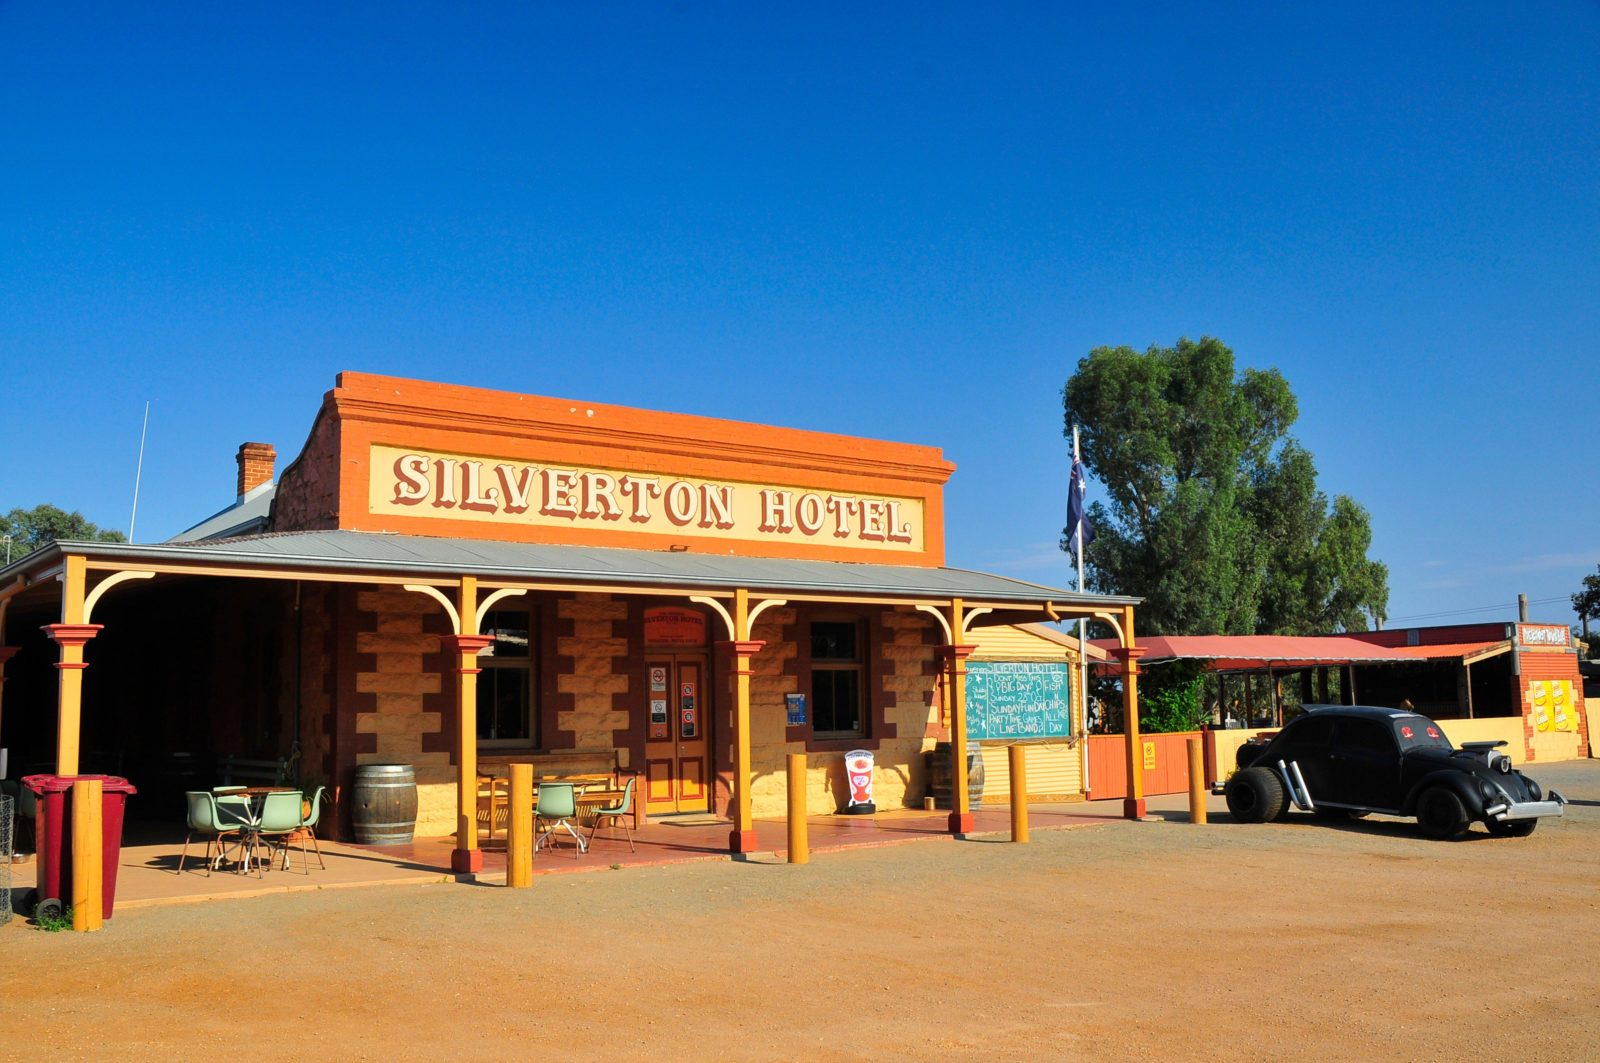 Front view of the Silverton Hotel